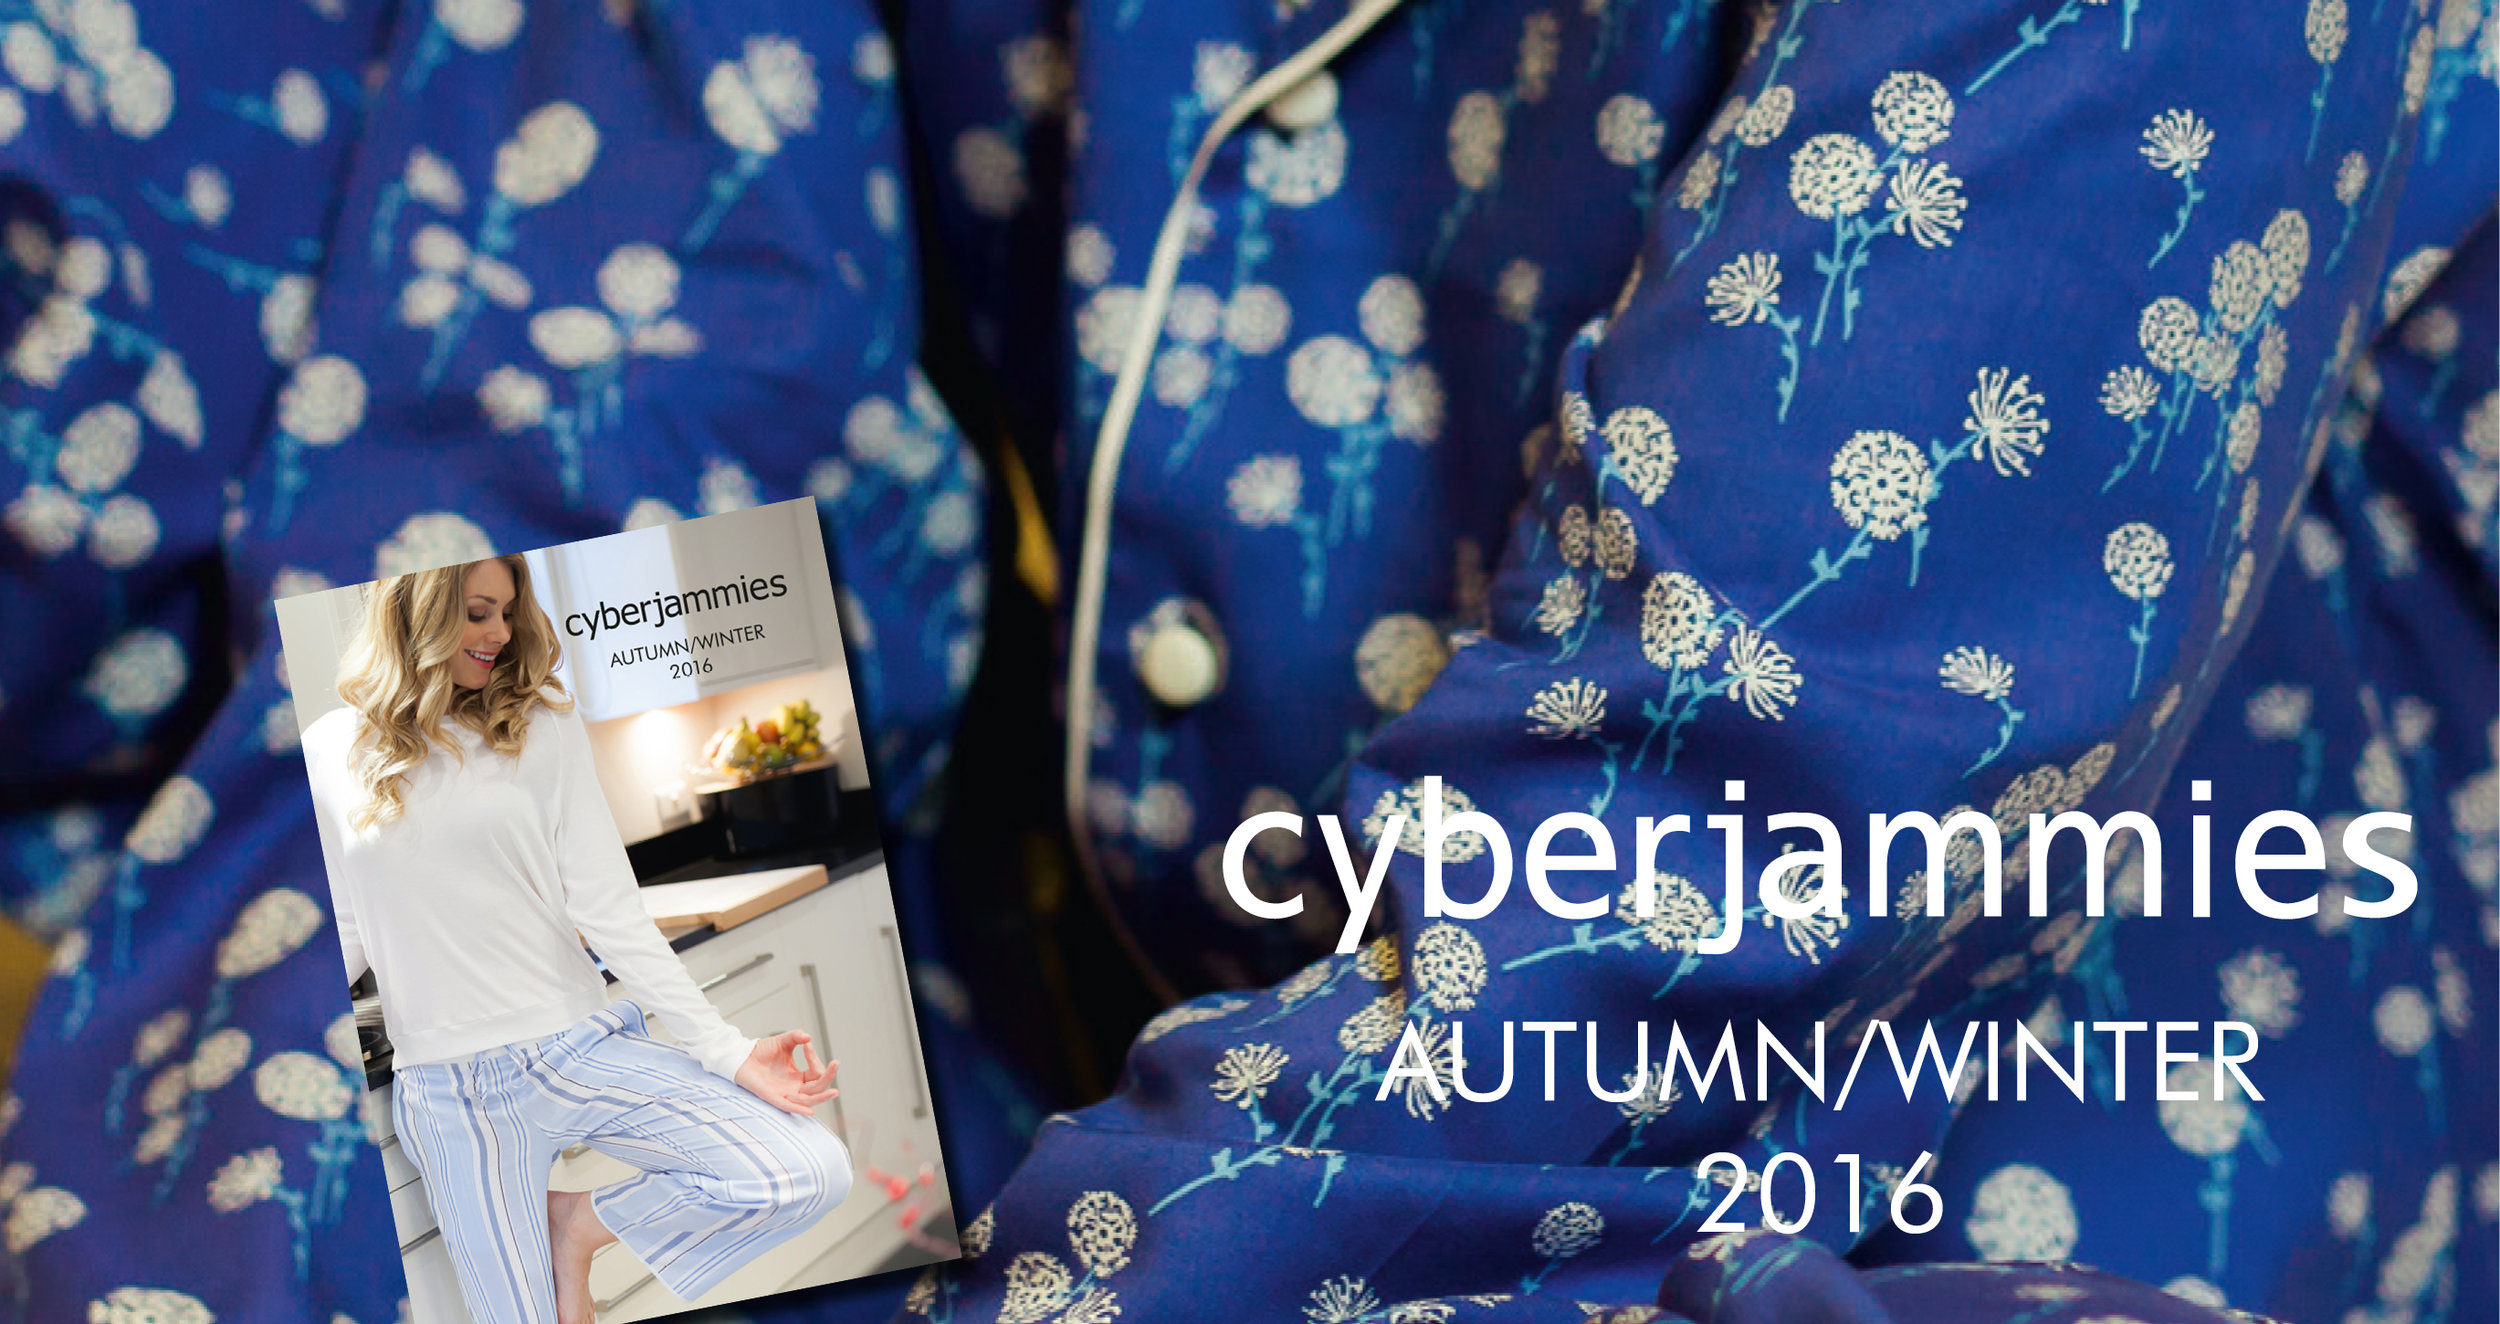 Cyberjammies Large Feb 2016 Web Headers.jpg